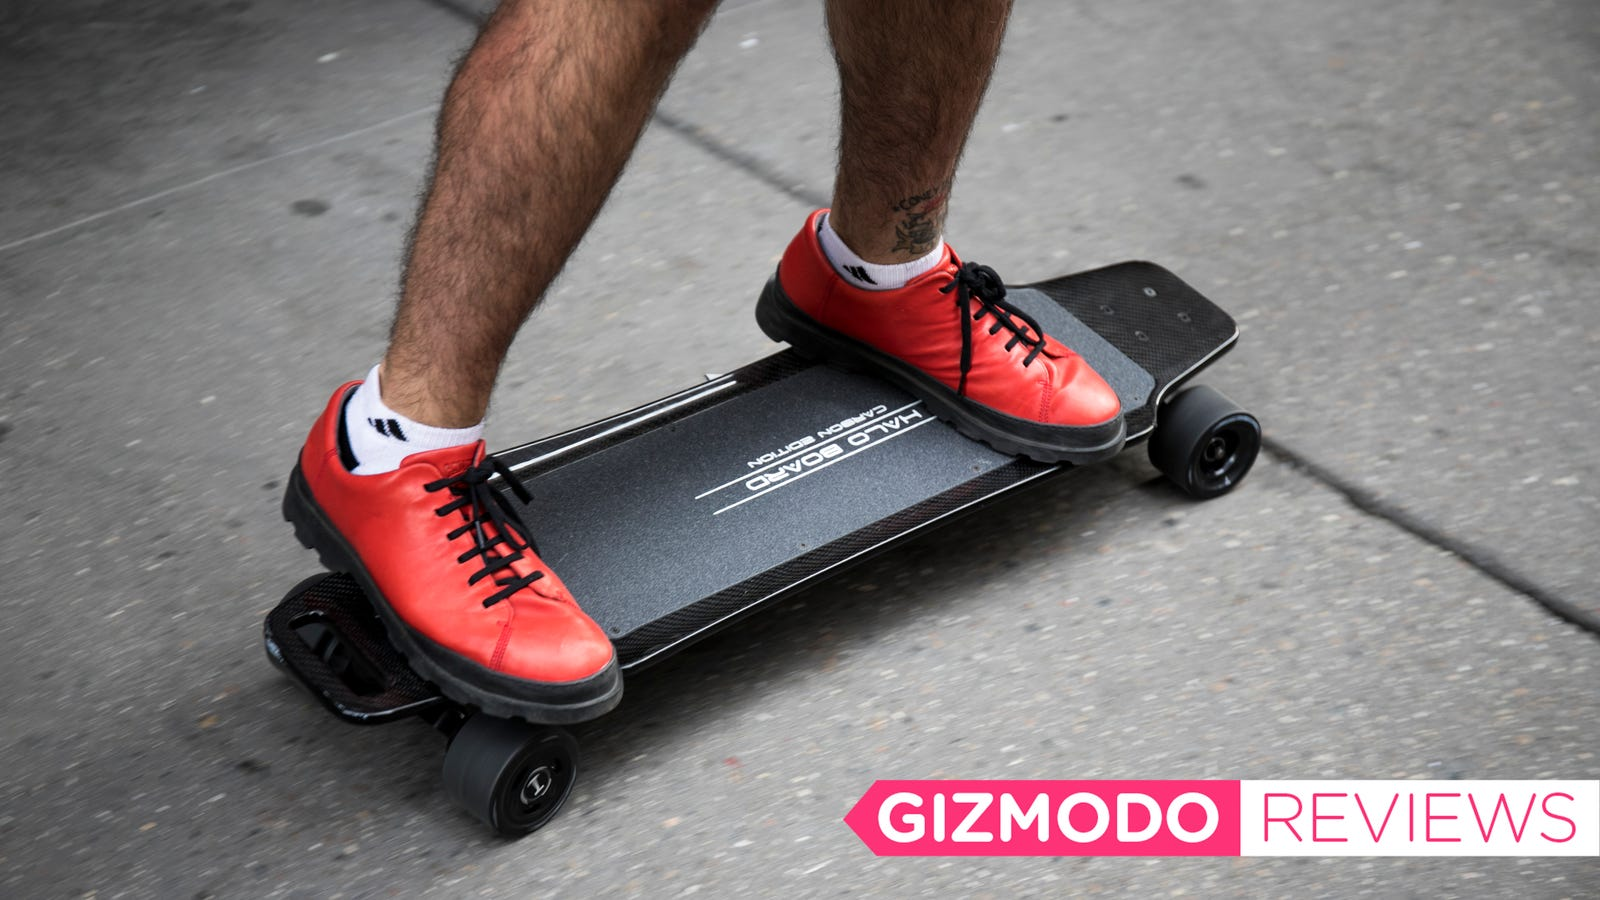 The Motorized Longboard Is the Vape of Transport and IDGAF I Love It